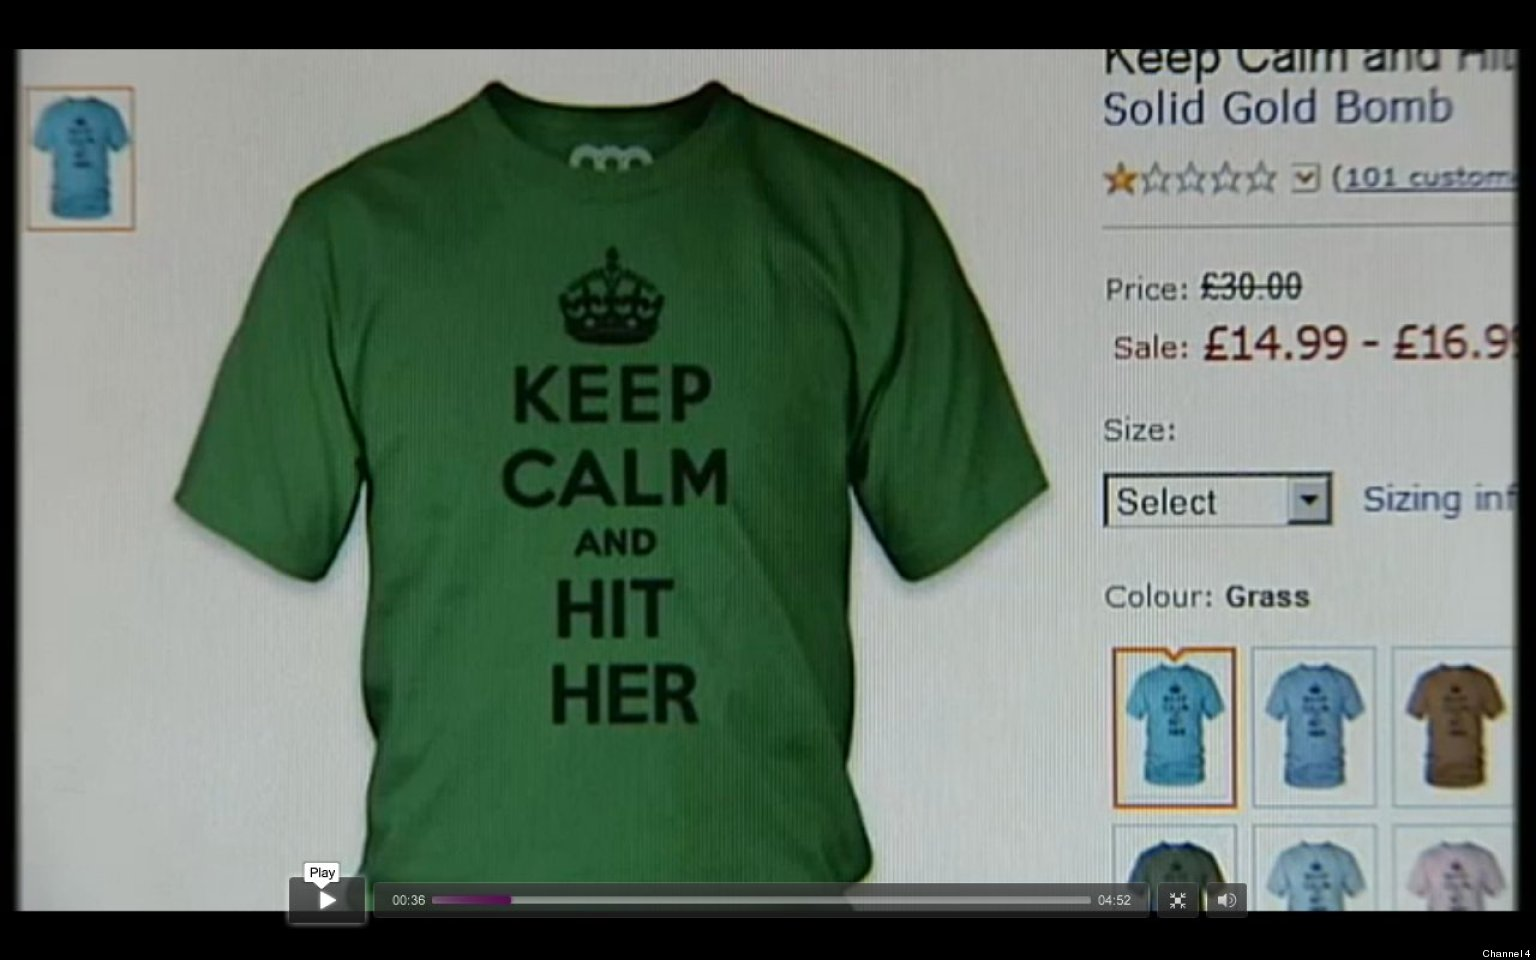 Amazon removes keep calm and rape t shirts seller solid gold amazon removes keep calm and rape t shirts seller solid gold bomb apologizes video huffpost gumiabroncs Gallery